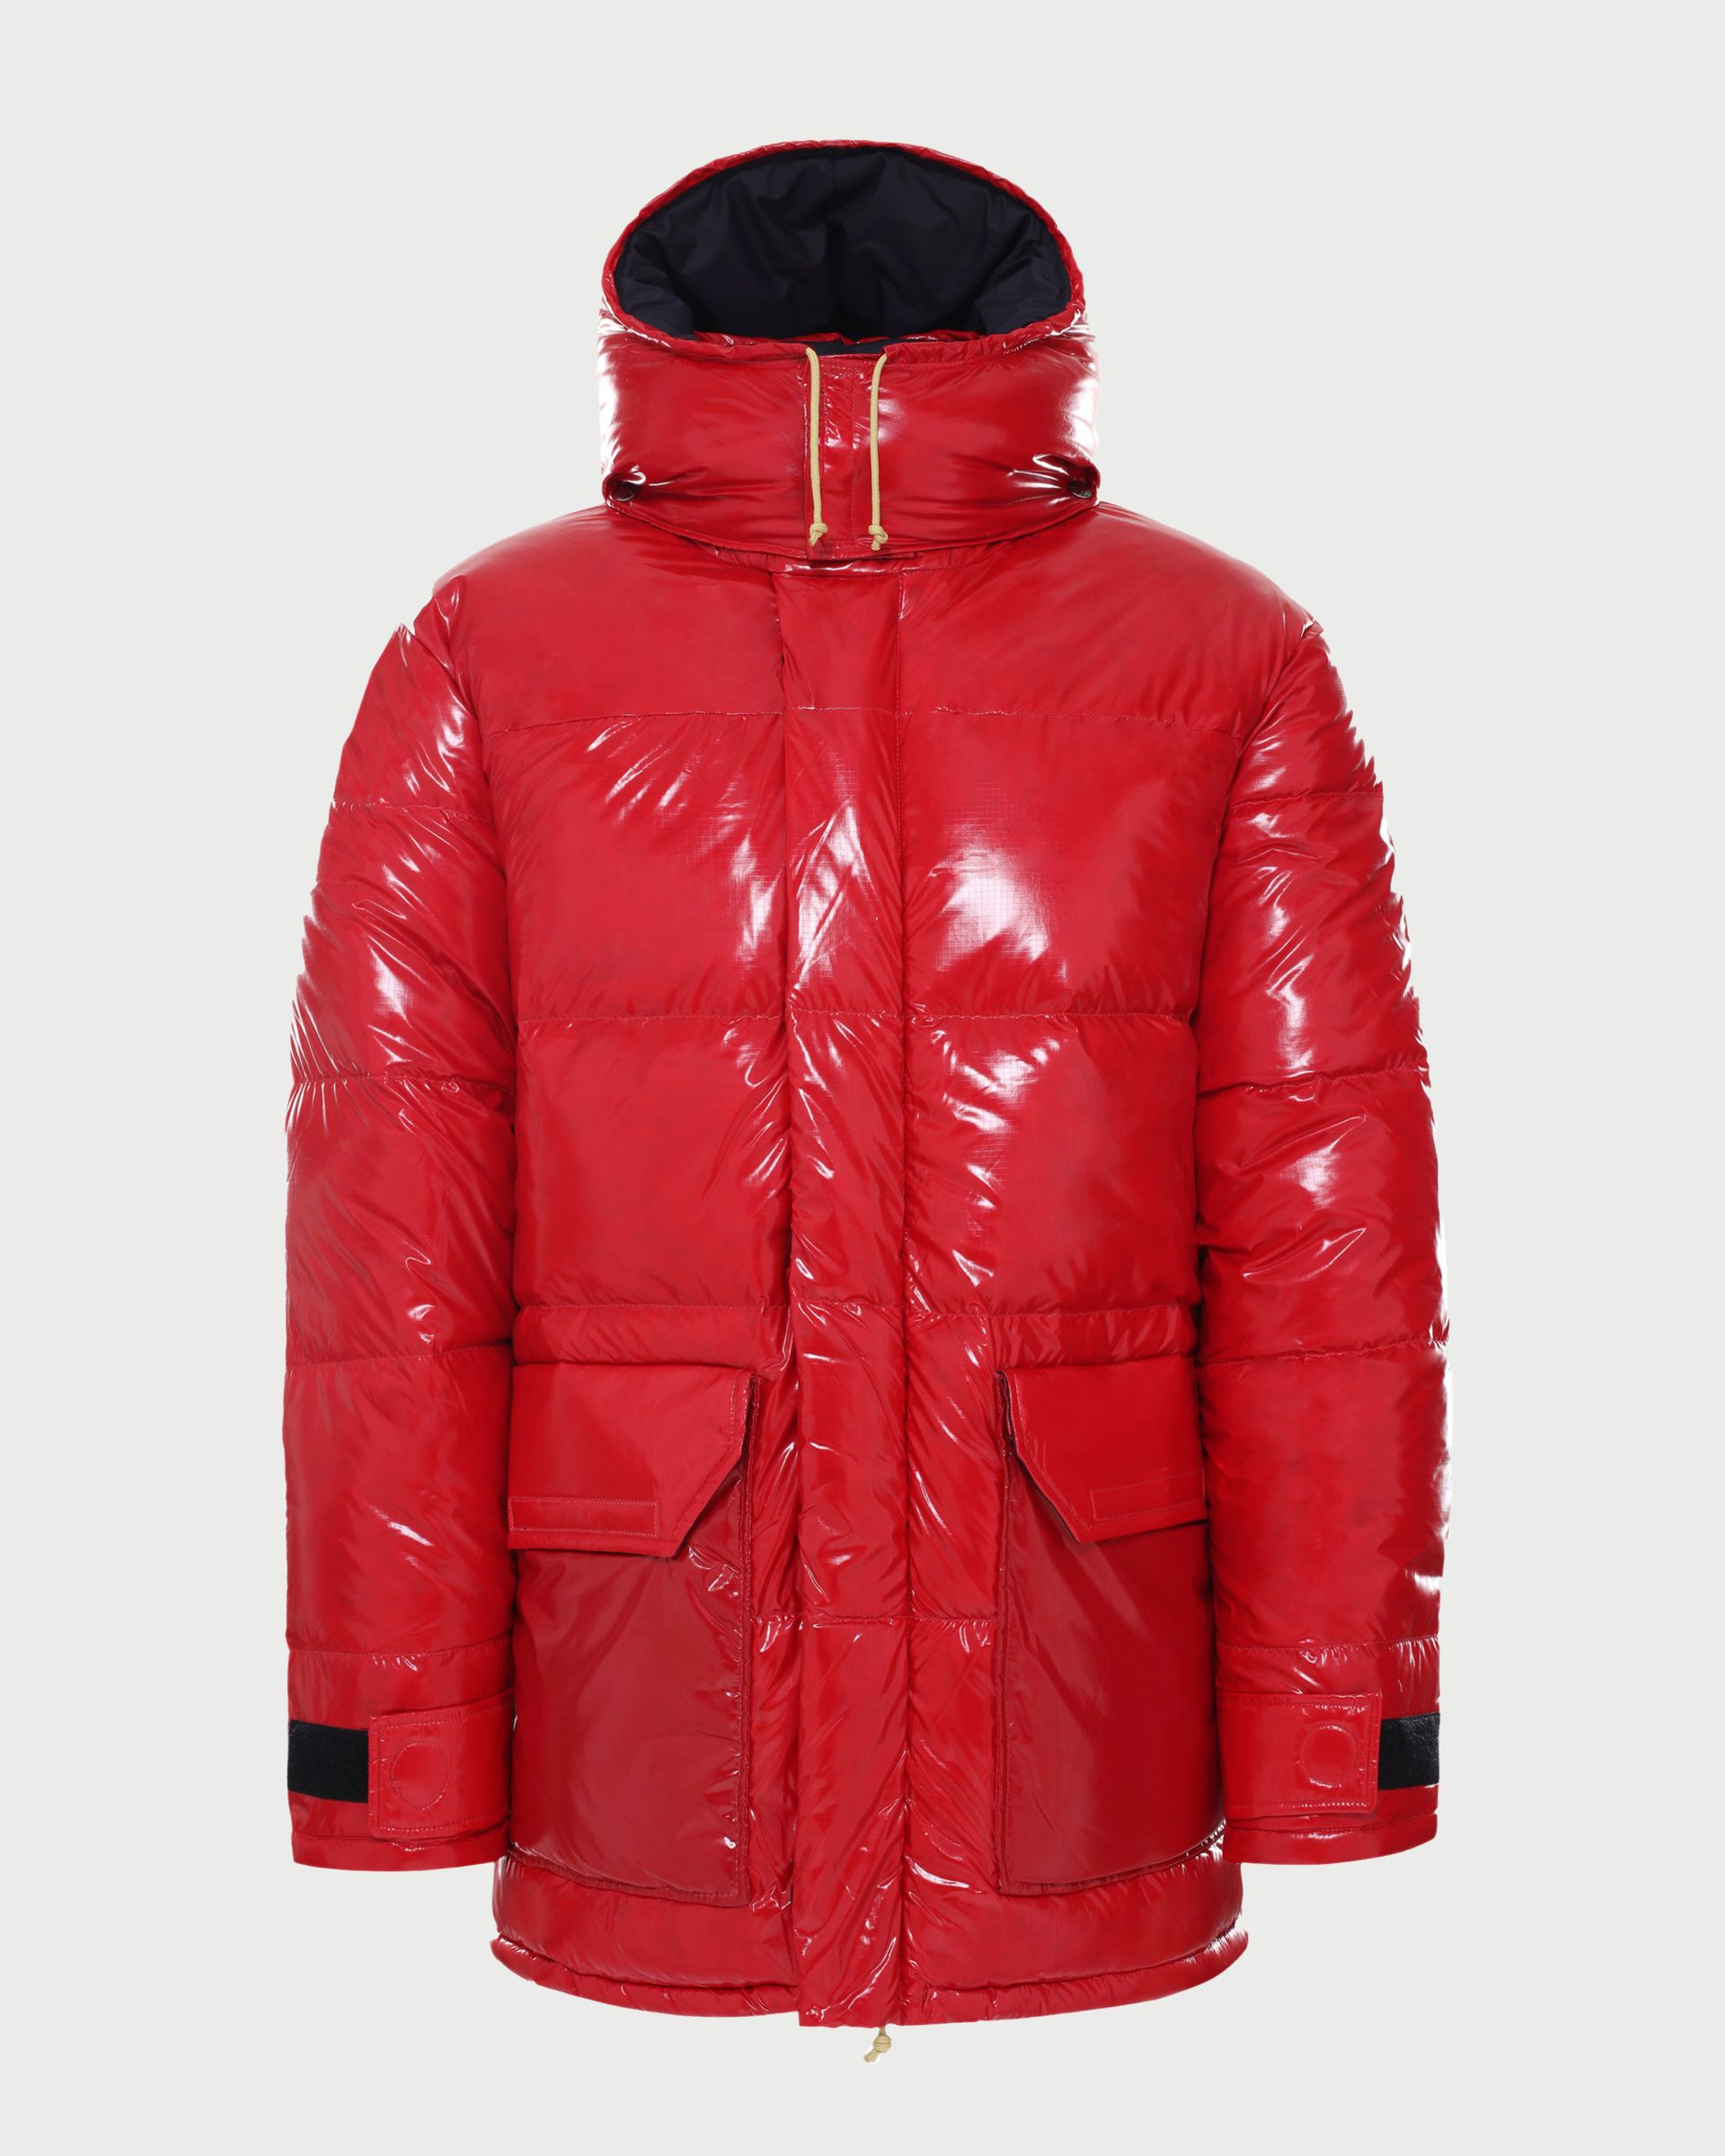 The North Face Brown Label - Brown Label Ripstop Down Parka Red Unisex - Image 1